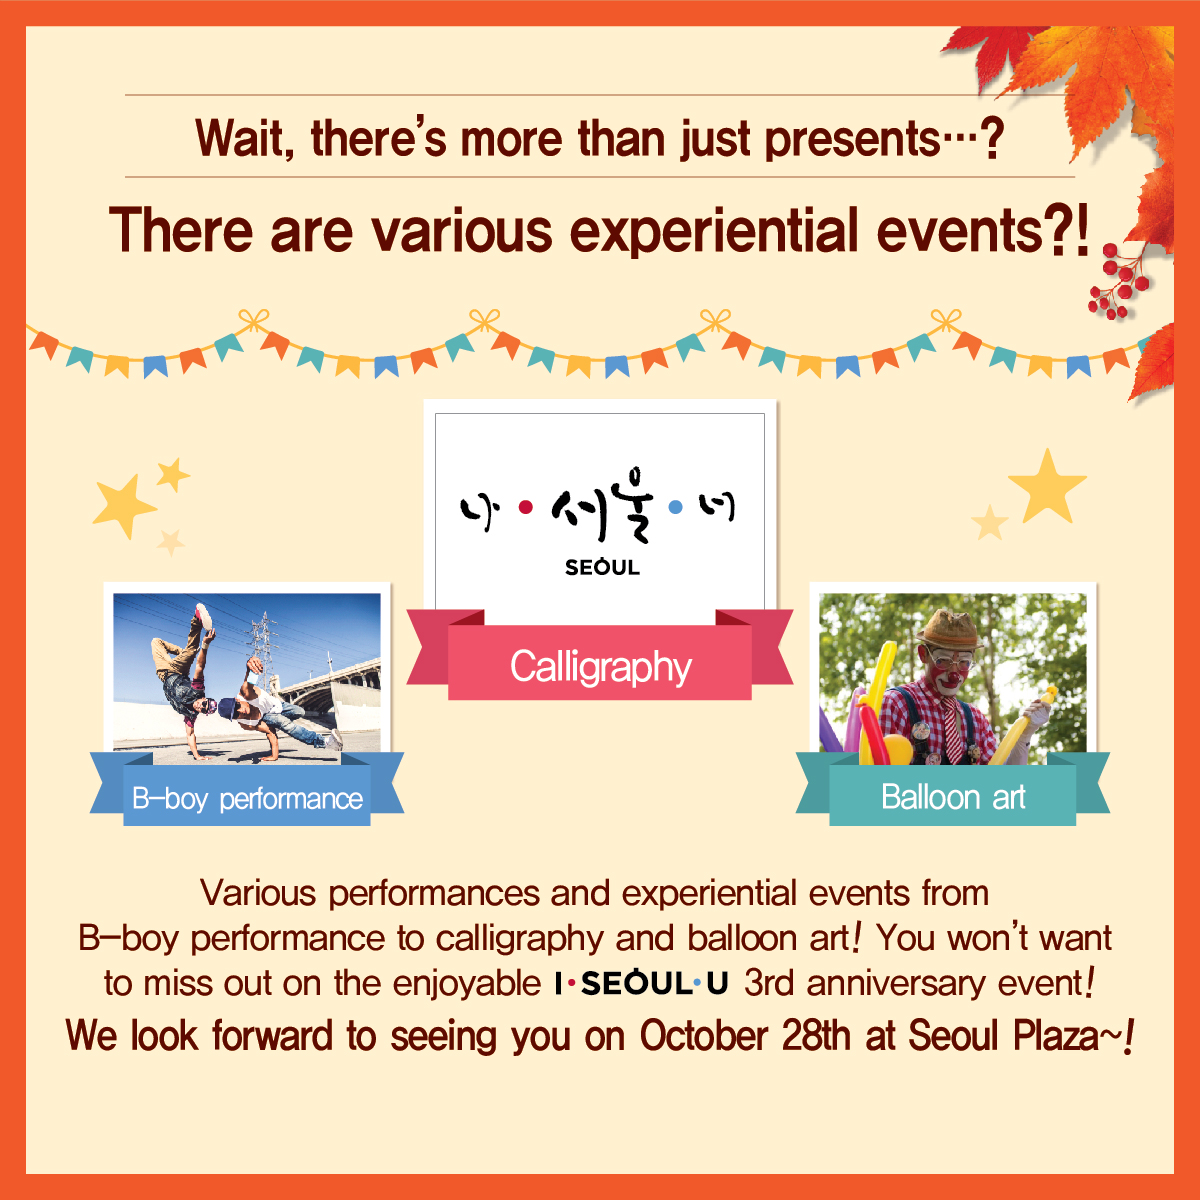 Wait, there's more than just presents…? There are various experiential events?! B-boy performance Calligraphy Balloon art Various performances and experiential events from B-boy performance to calligraphy and balloon art! You won't want to miss out on the enjoyable I.SEOUL.U 3rd anniversary event! We look forward to seeing you on October 28th at Seoul Plaza~!